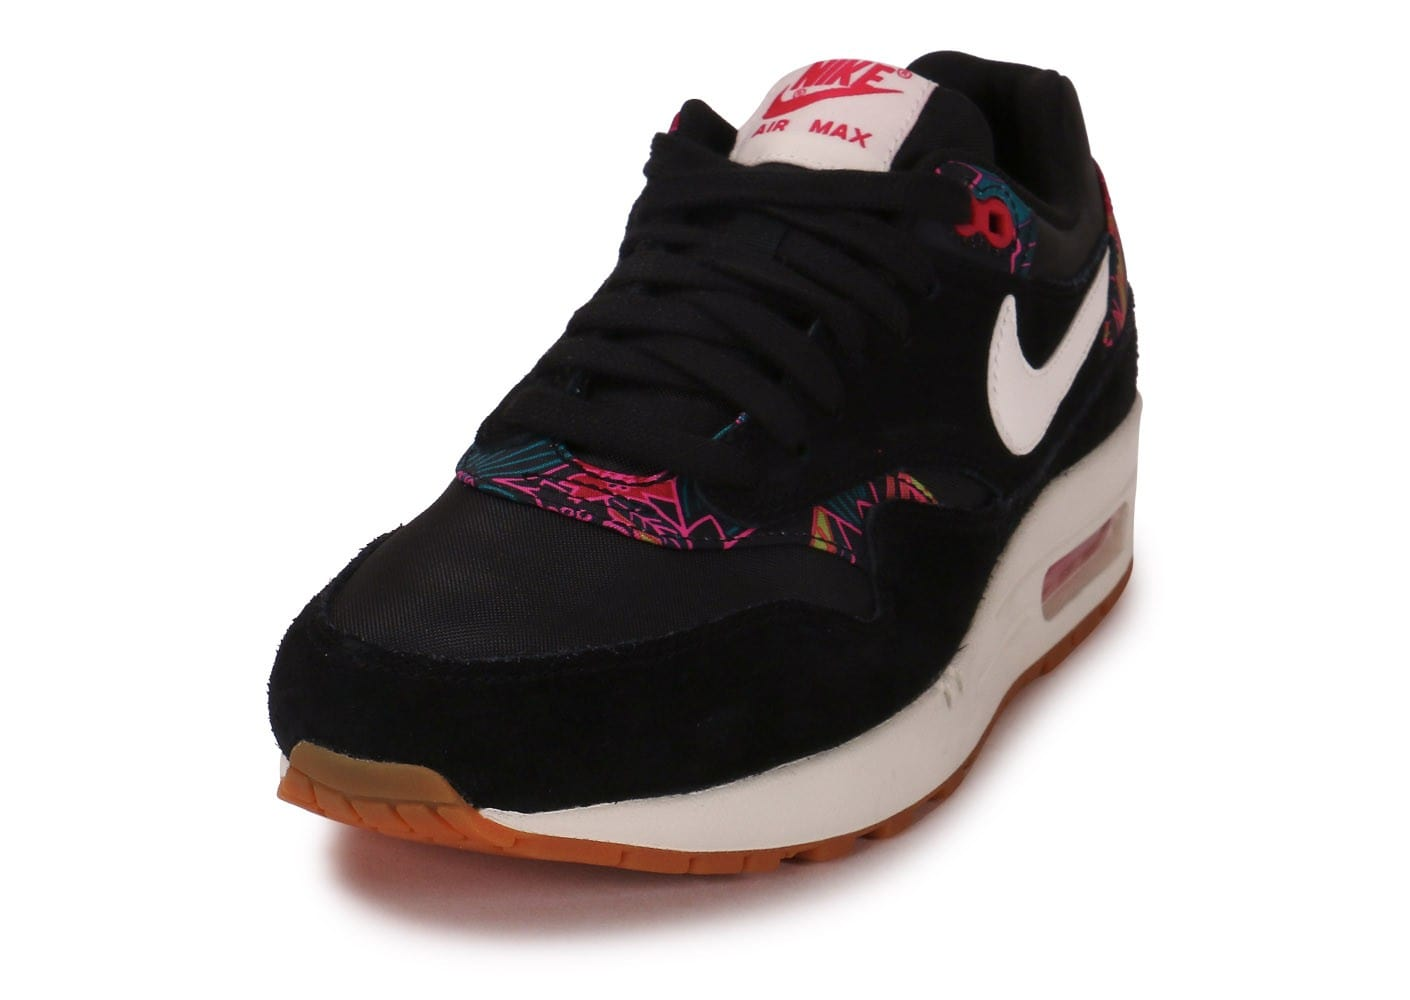 huge selection of 75891 07027 ... Chaussures Nike Air Max 1 Print aloha noire vue avant ...